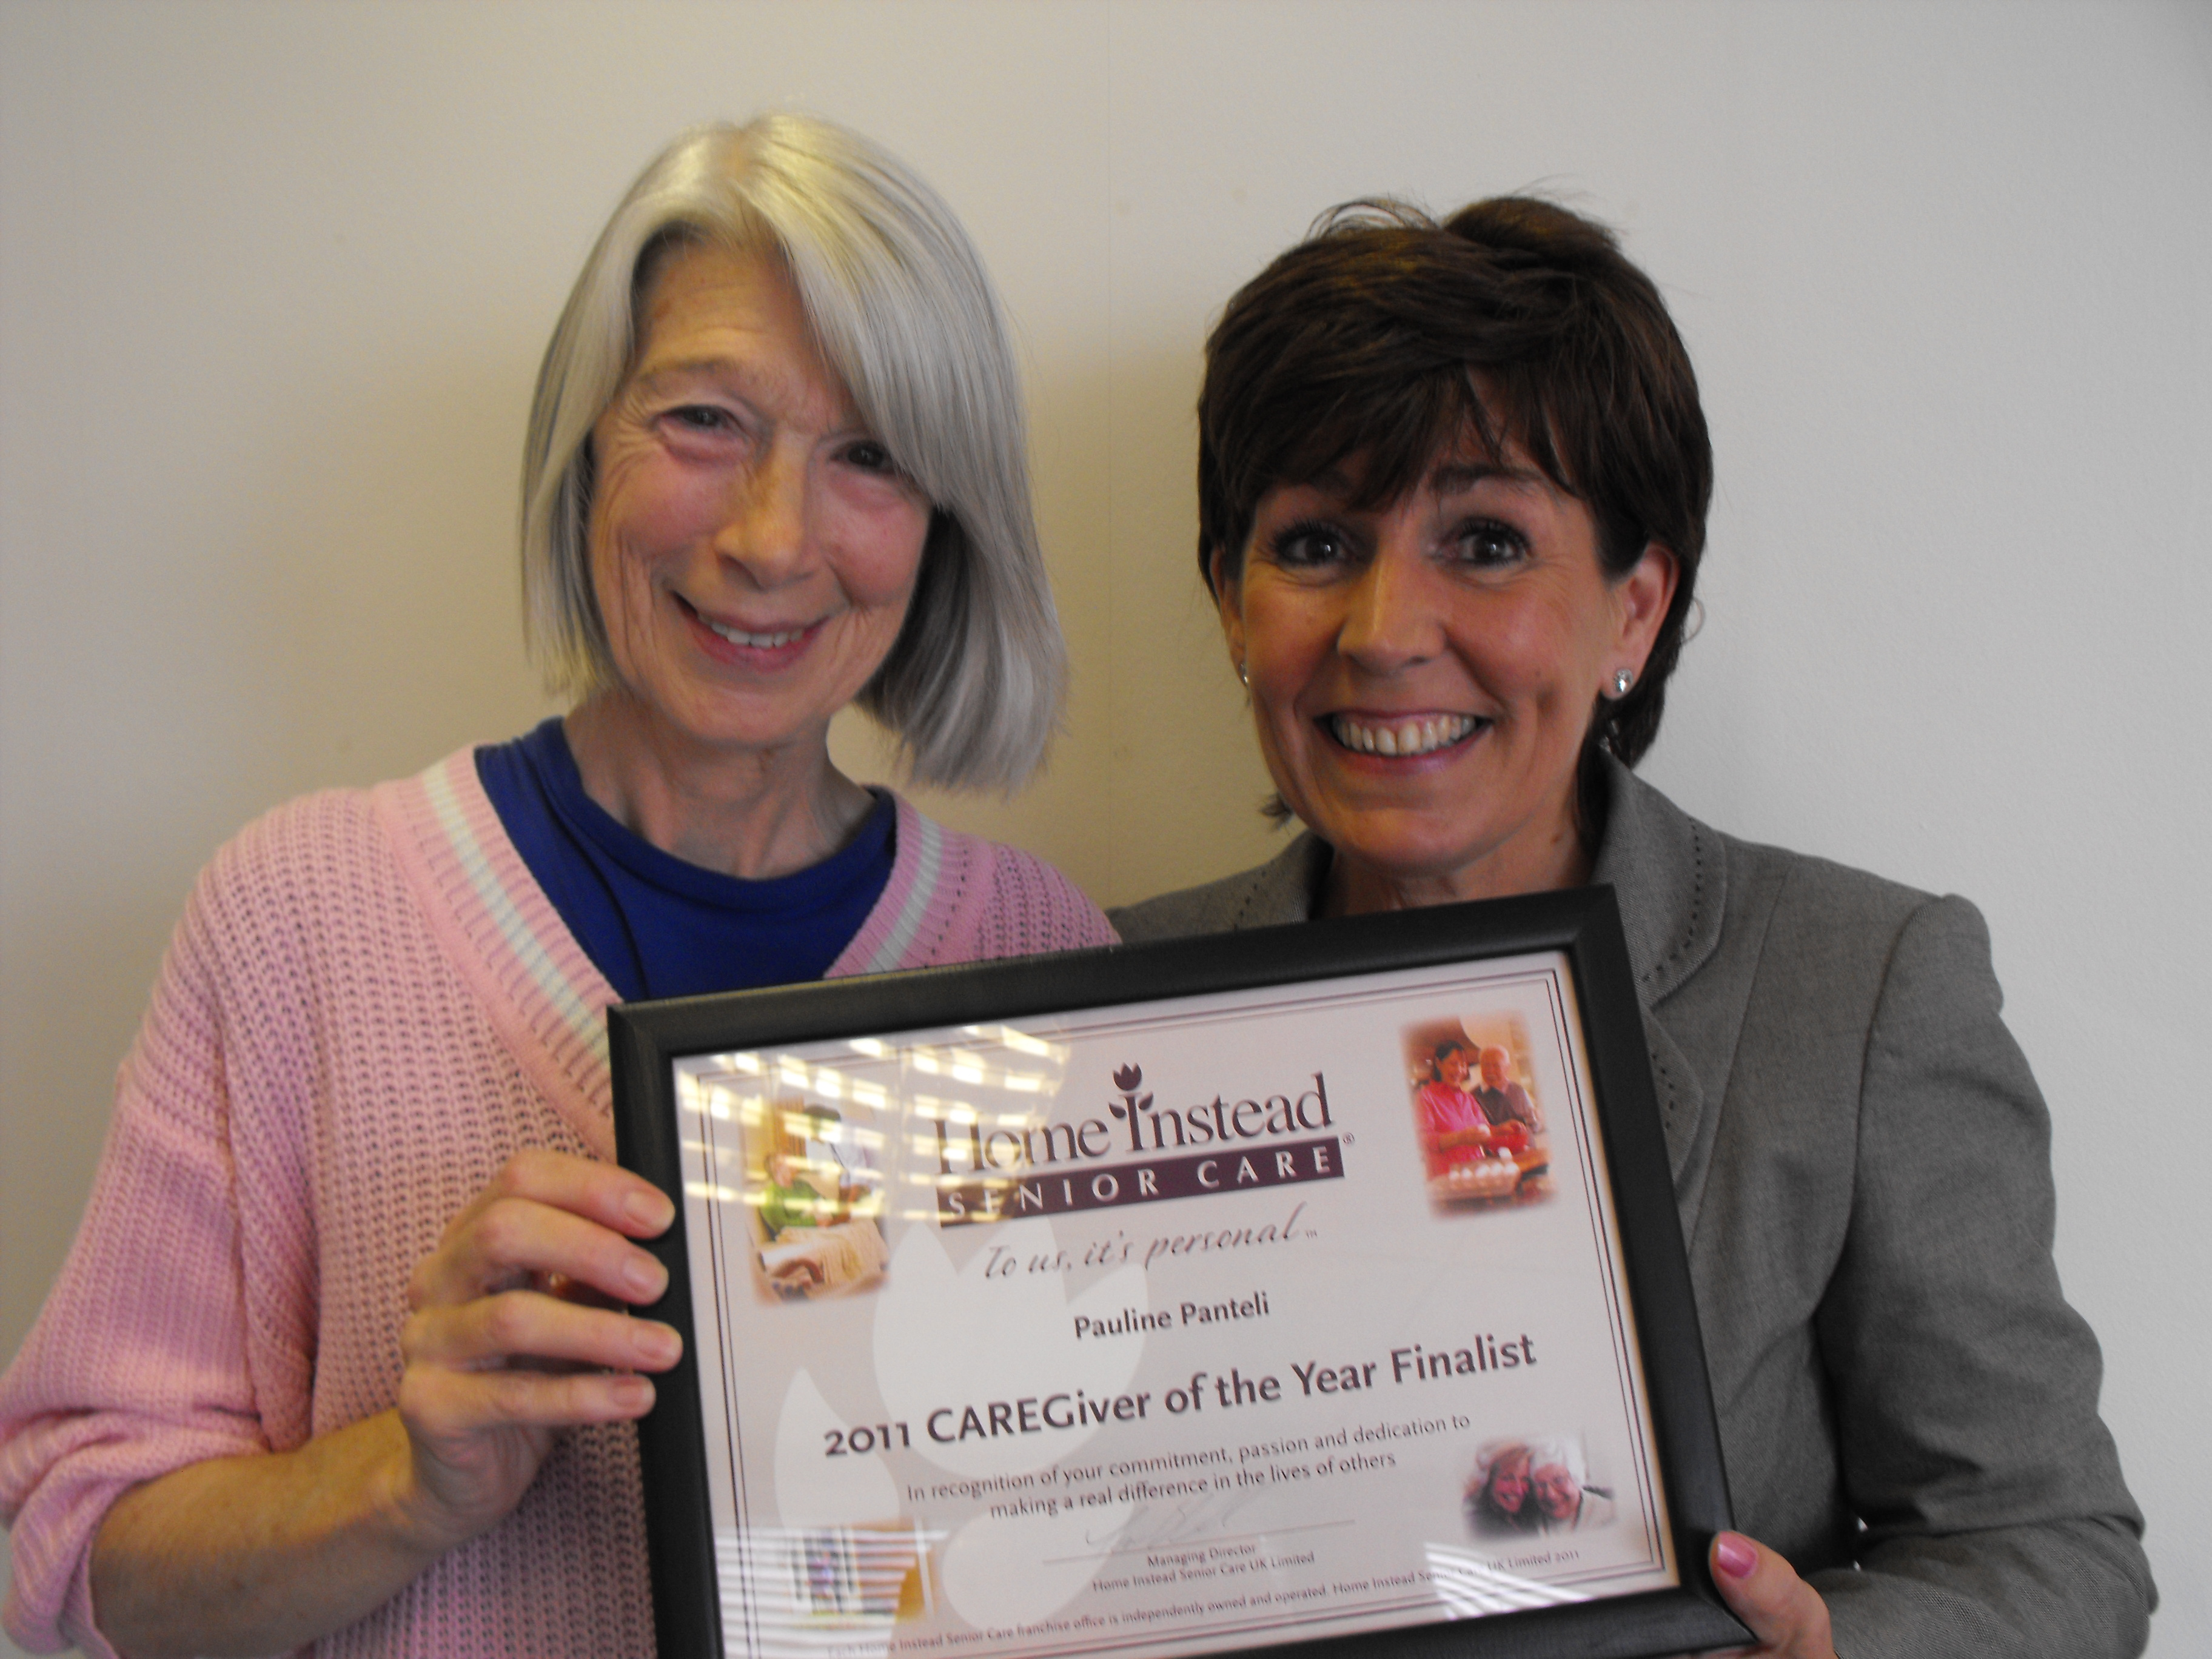 65-year-old Home Instead Barnet CAREgiver Pauline Panteli is one of the ten finalists of the 'Caregiver of the Year' award